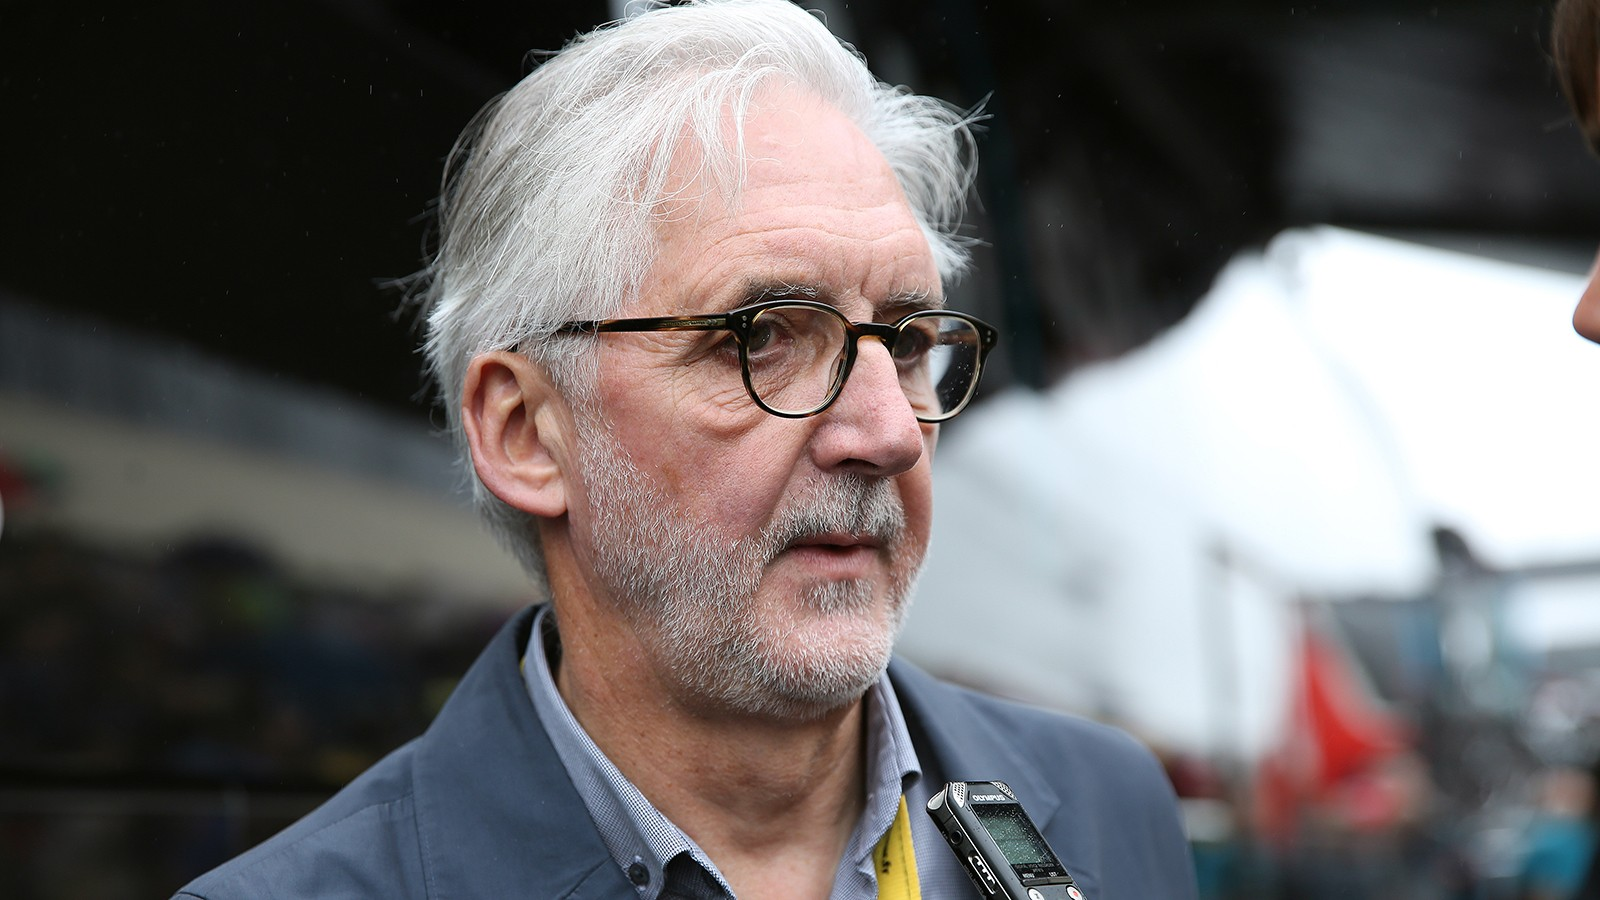 Brian Cookson nurtured British cycling towards becoming a national source of pride